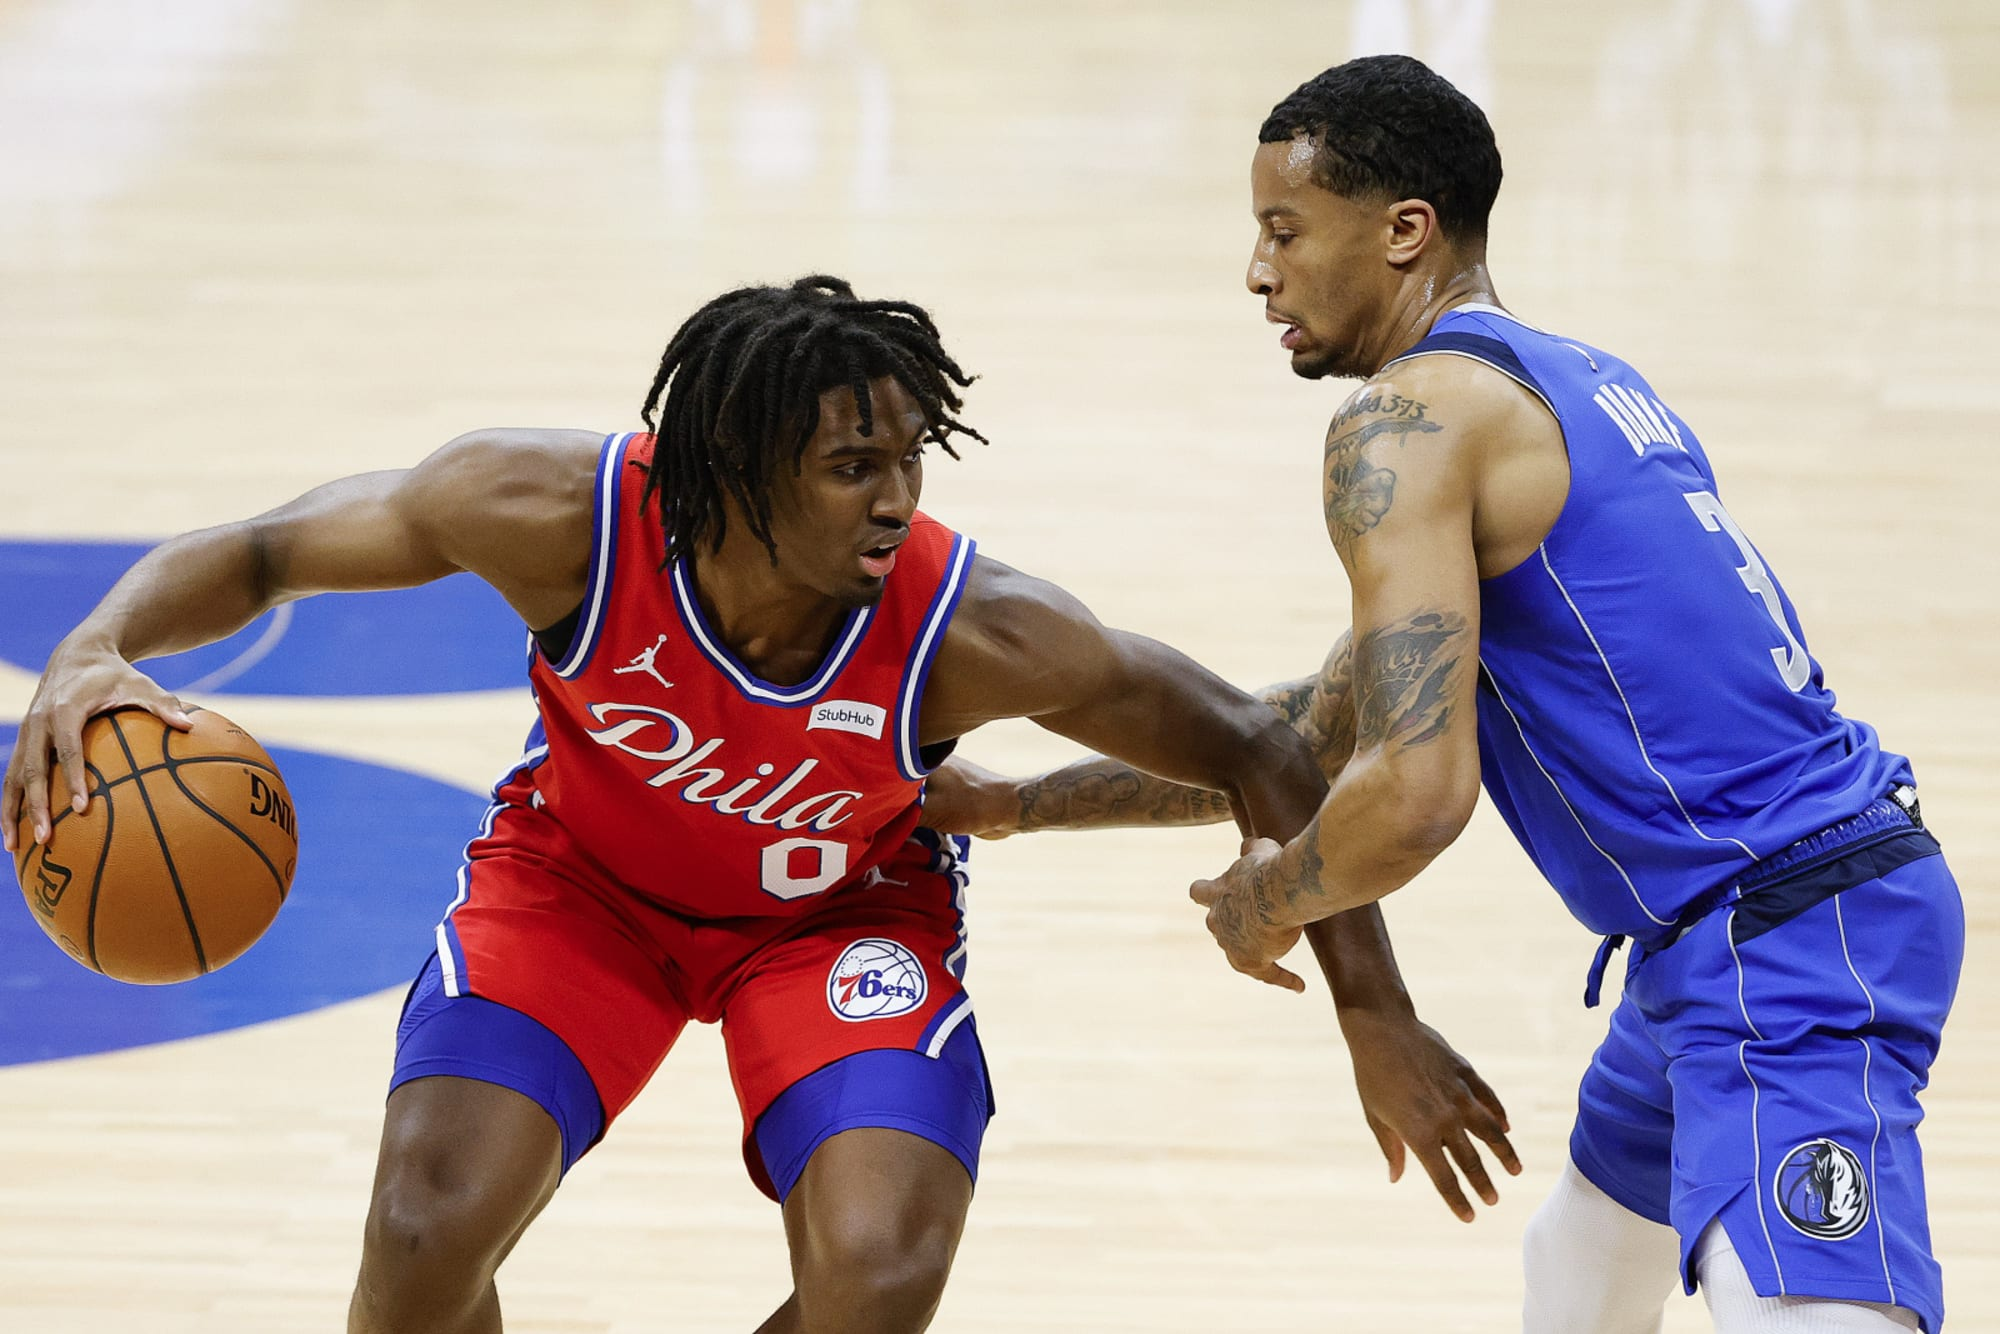 Sixers' Rookie Report: Tyrese Maxey bounced back